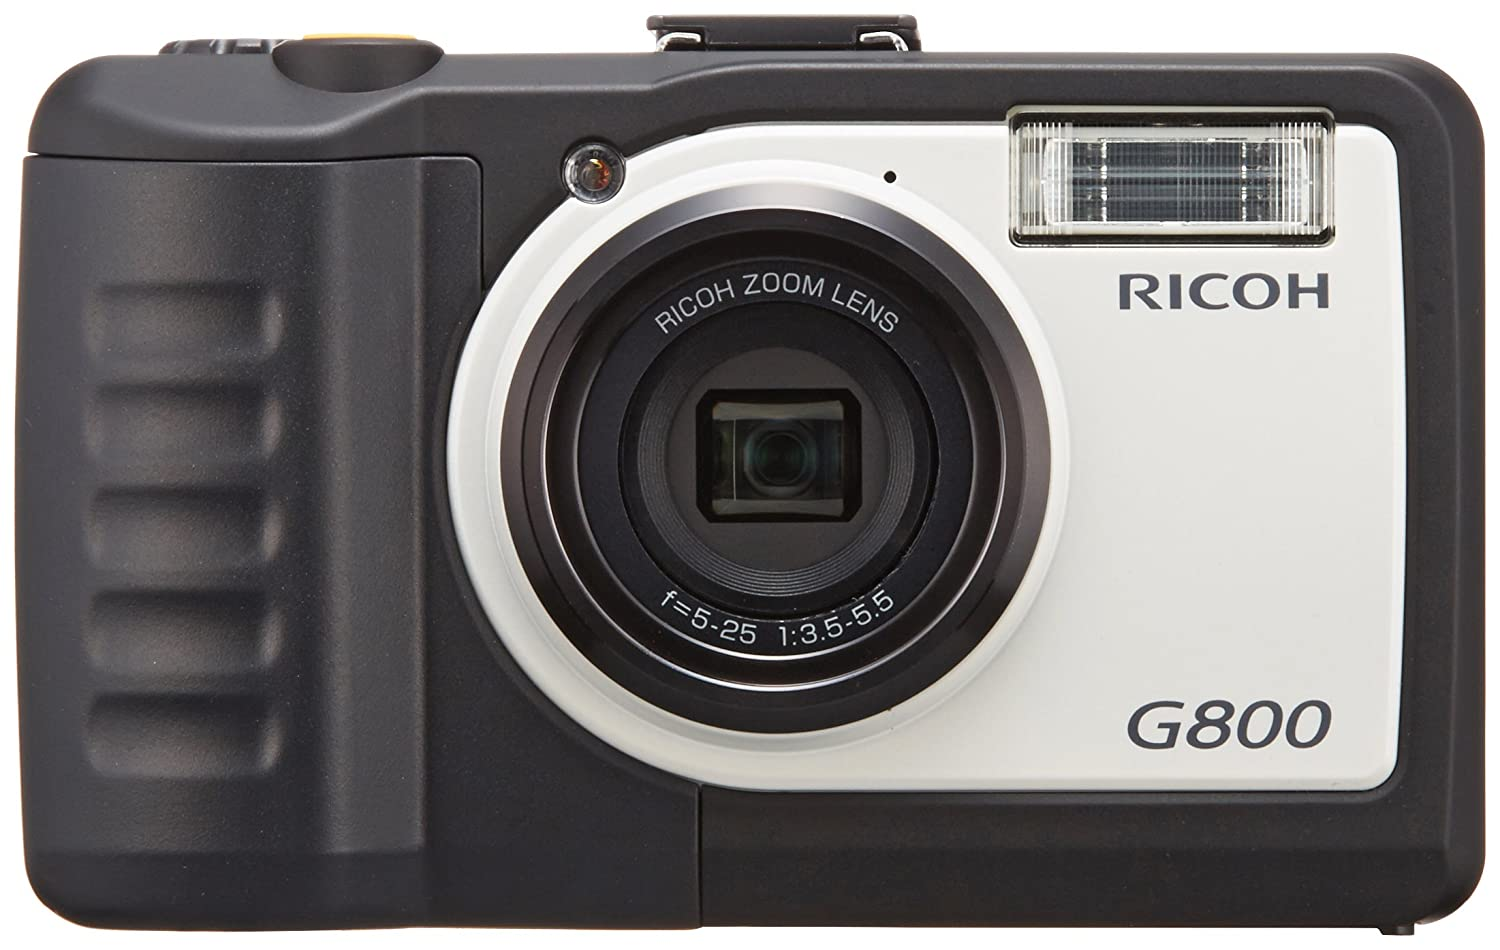 RICOH G800 CAMERA DRIVERS FOR WINDOWS 7